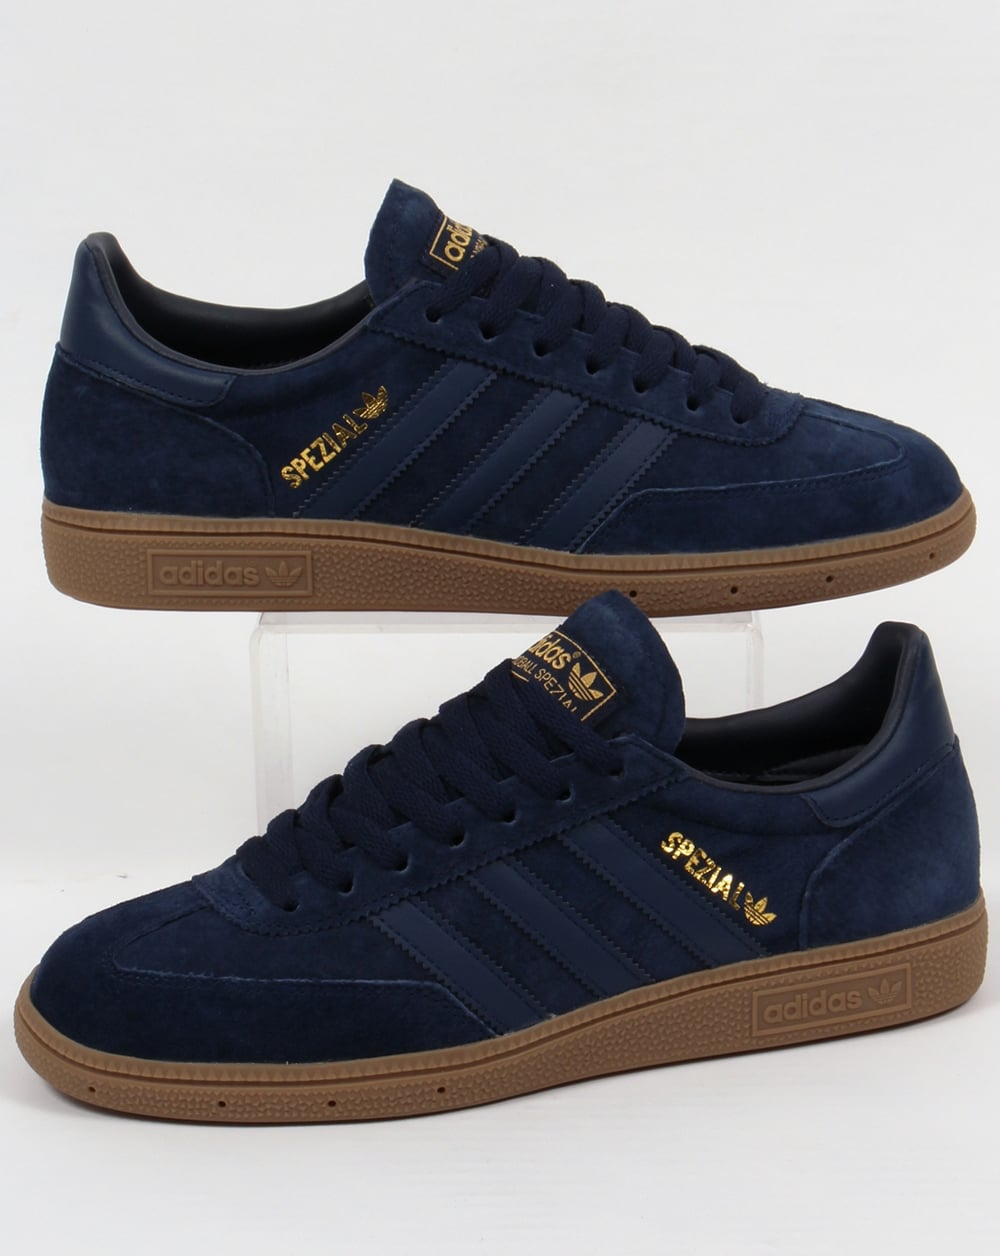 outlet boutique a few days away newest collection Adidas Spezial Trainers Navy/Gum